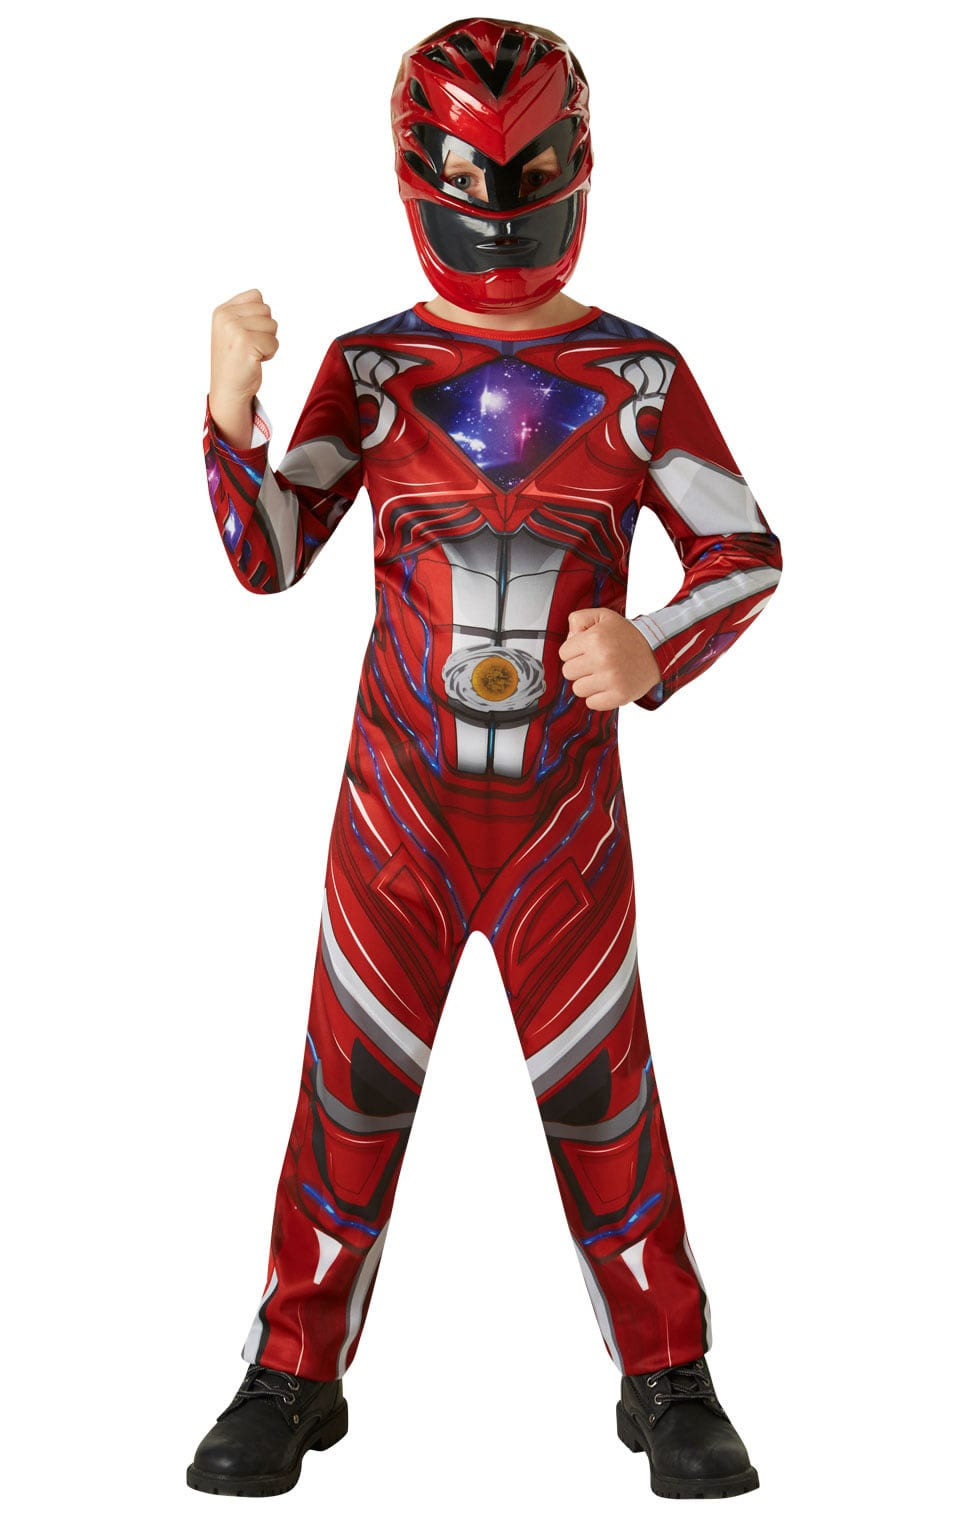 Power Ranger Movie Red Ranger Classic Children's Fancy Dress Costume